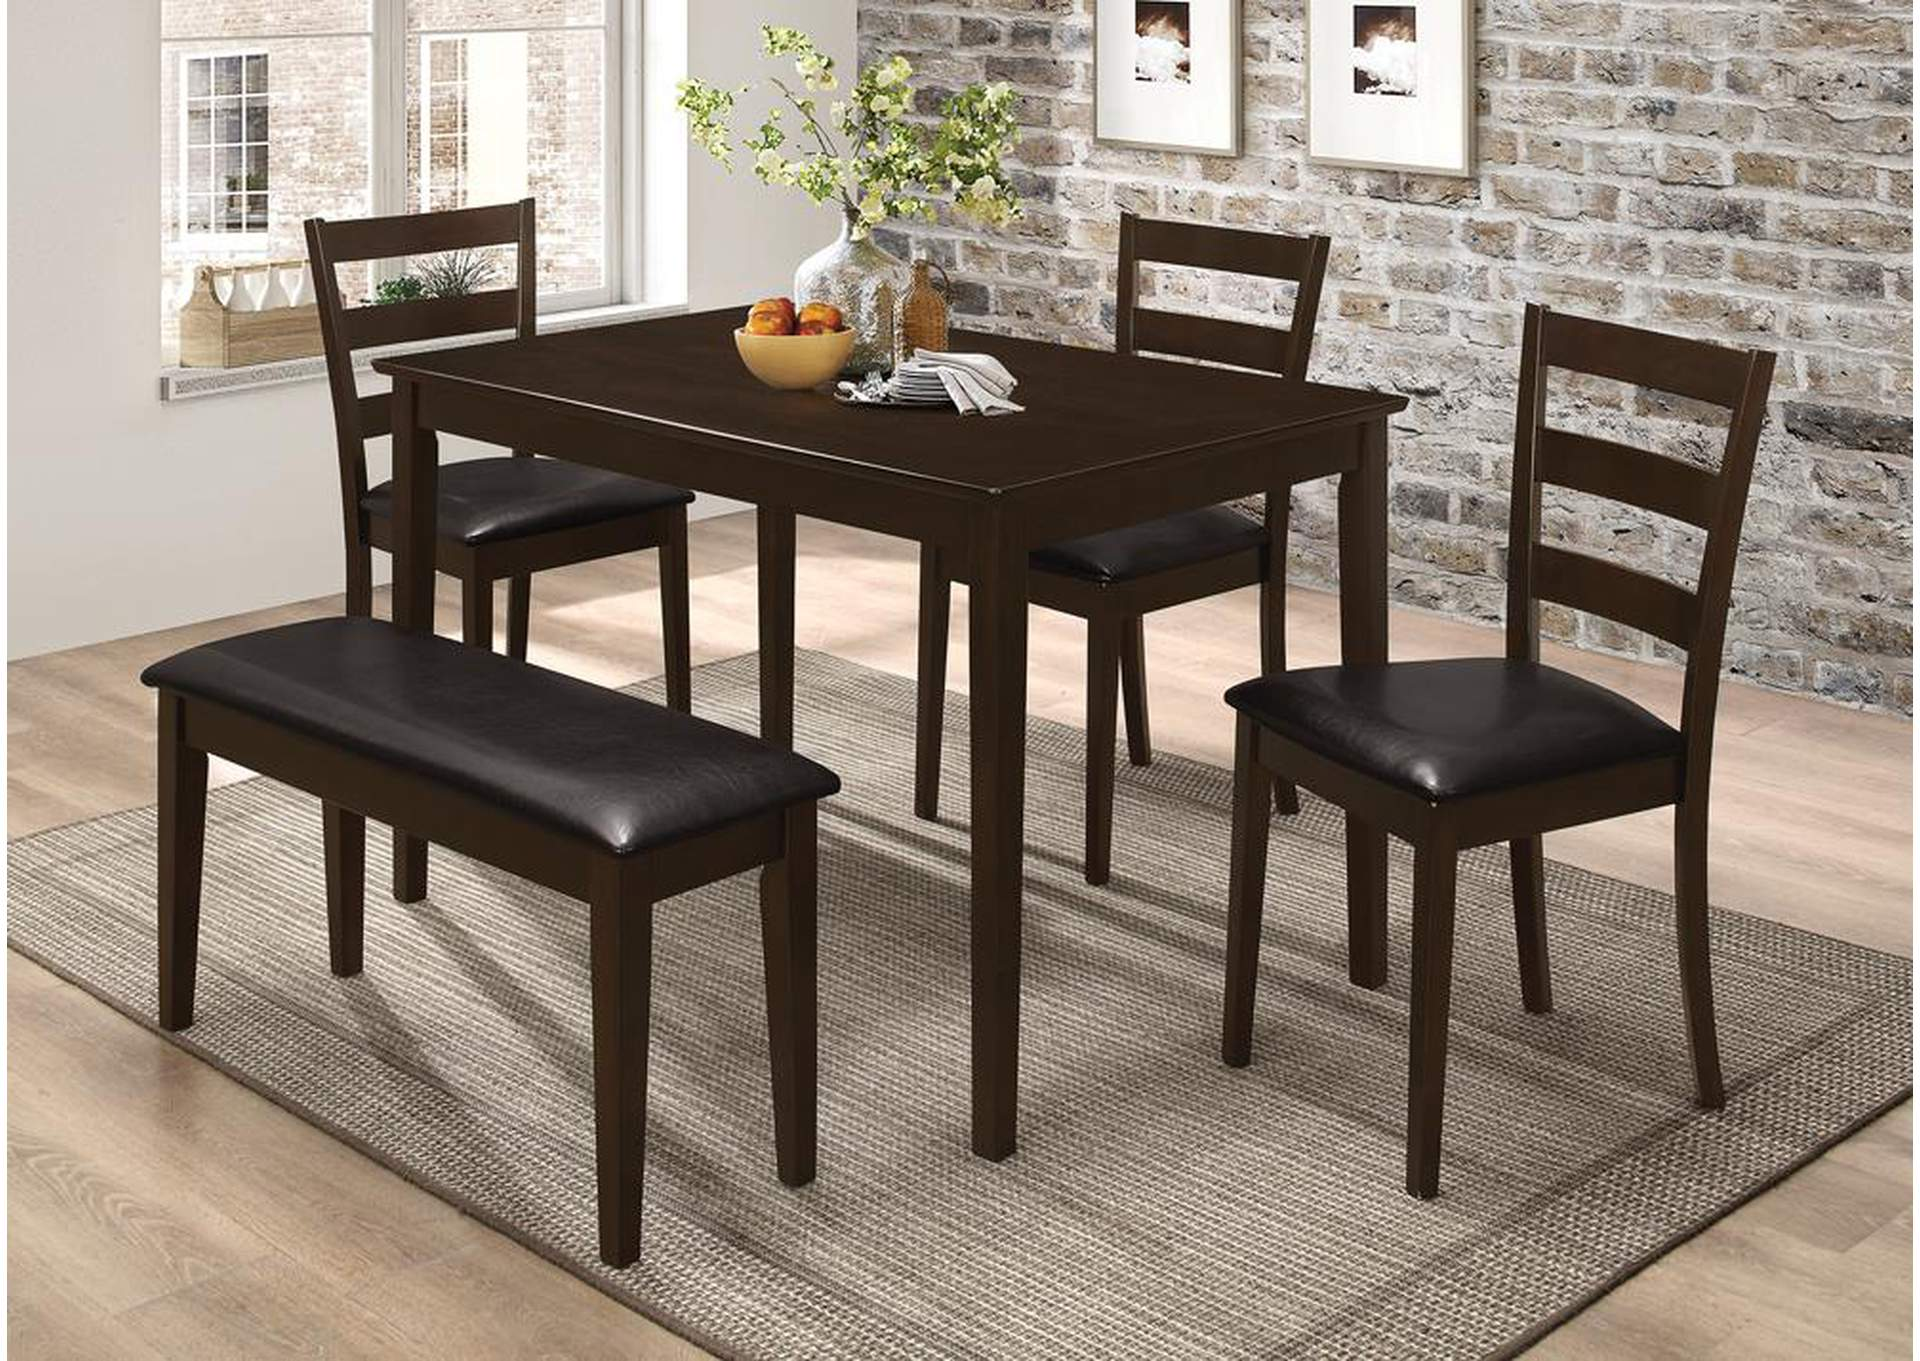 Dark Brown & Cappuccino 5 Piece Dining Set,Coaster Furniture